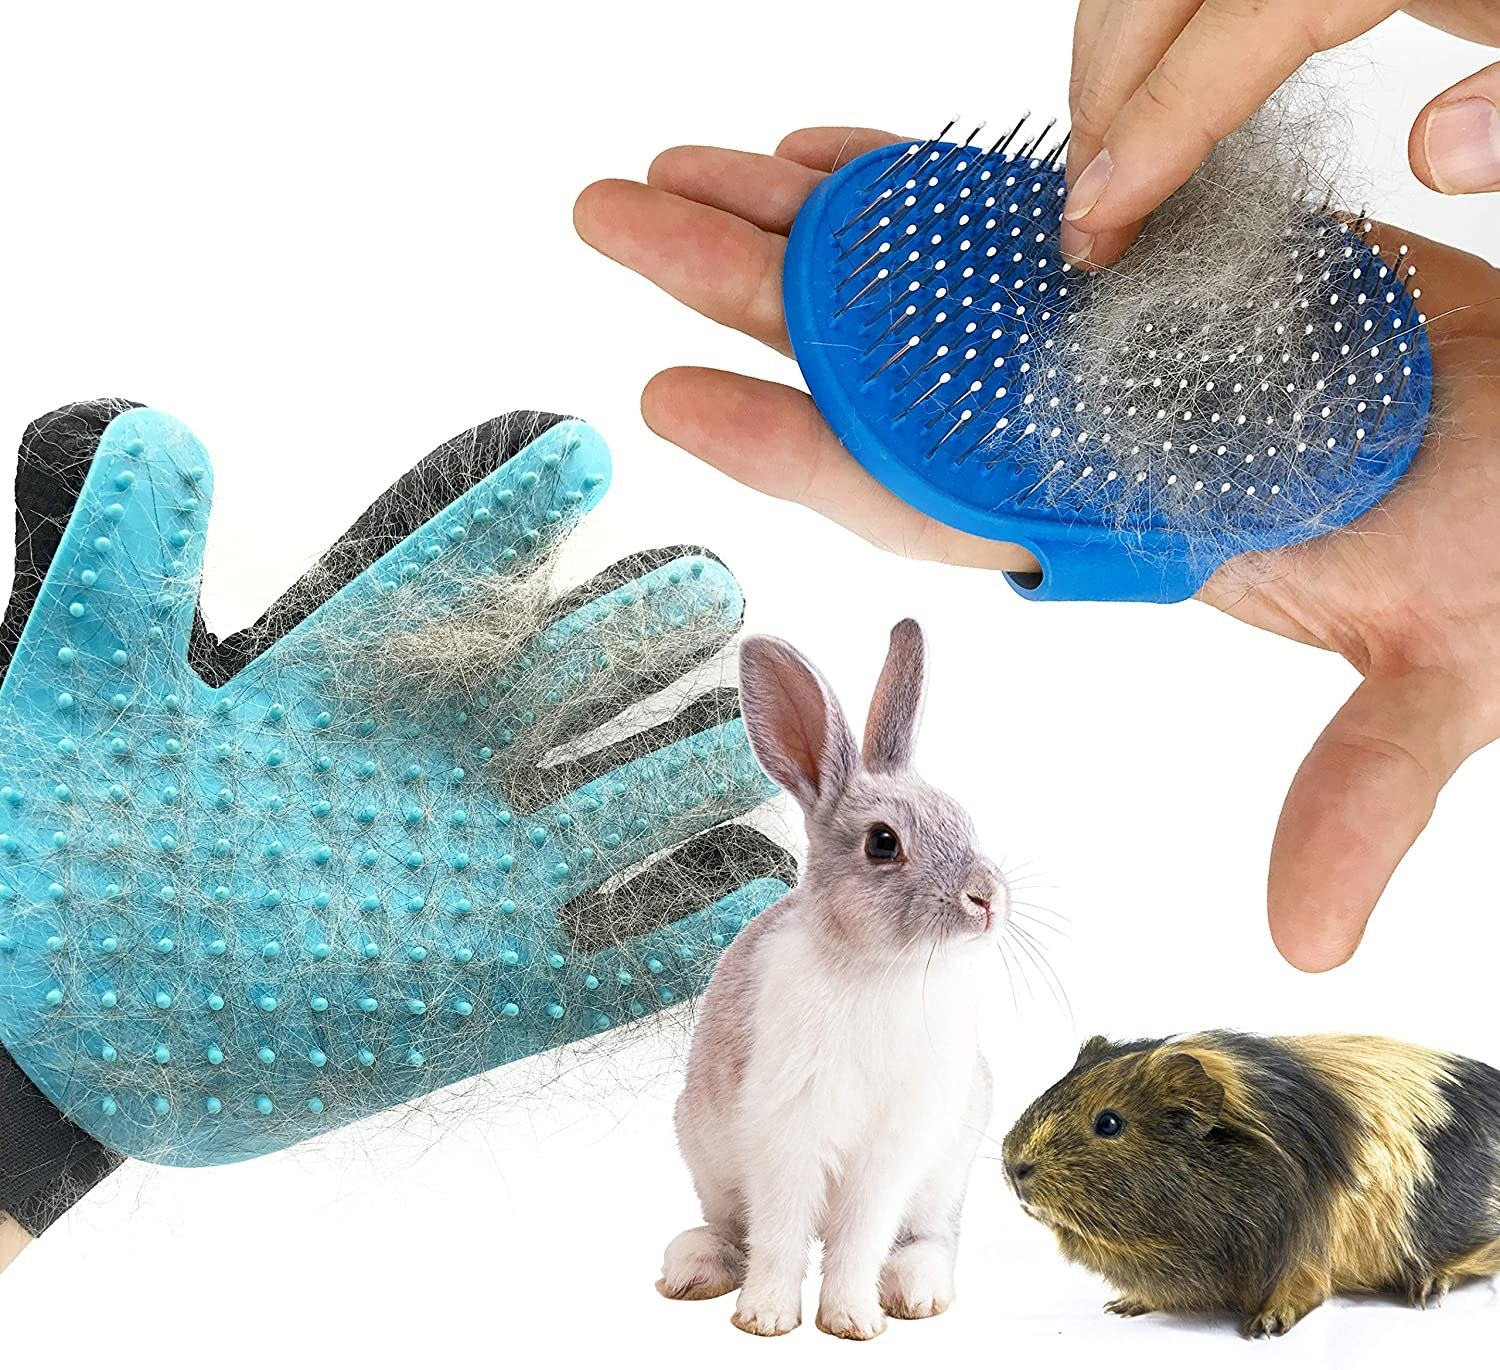 Models use the aqua glove and blue brush to brush a white and gray rabbit and a brown and black guinea pig